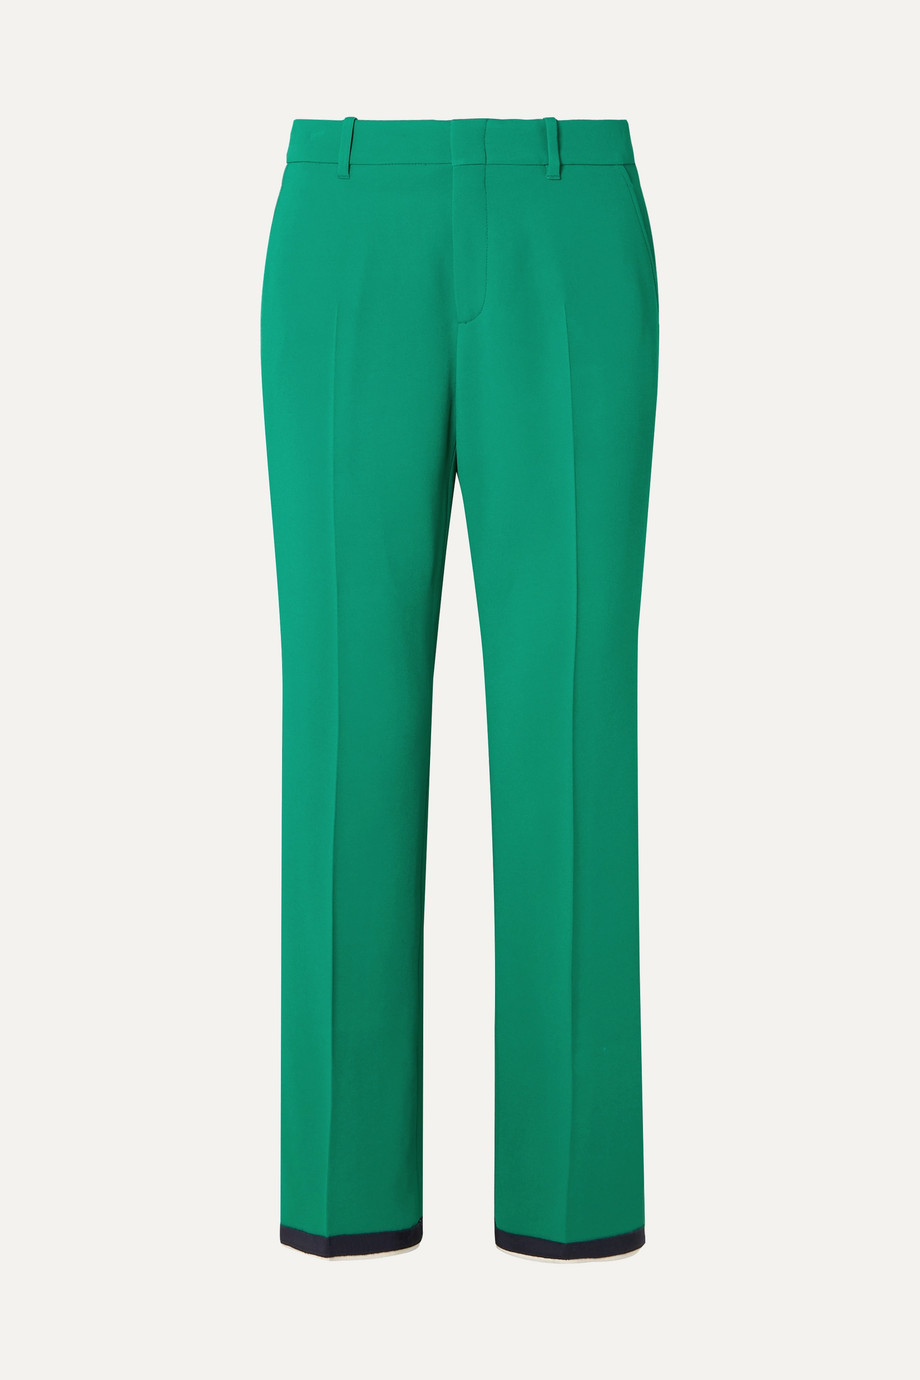 Gucci Grosgrain-trimmed stretch-cady bootcut pants